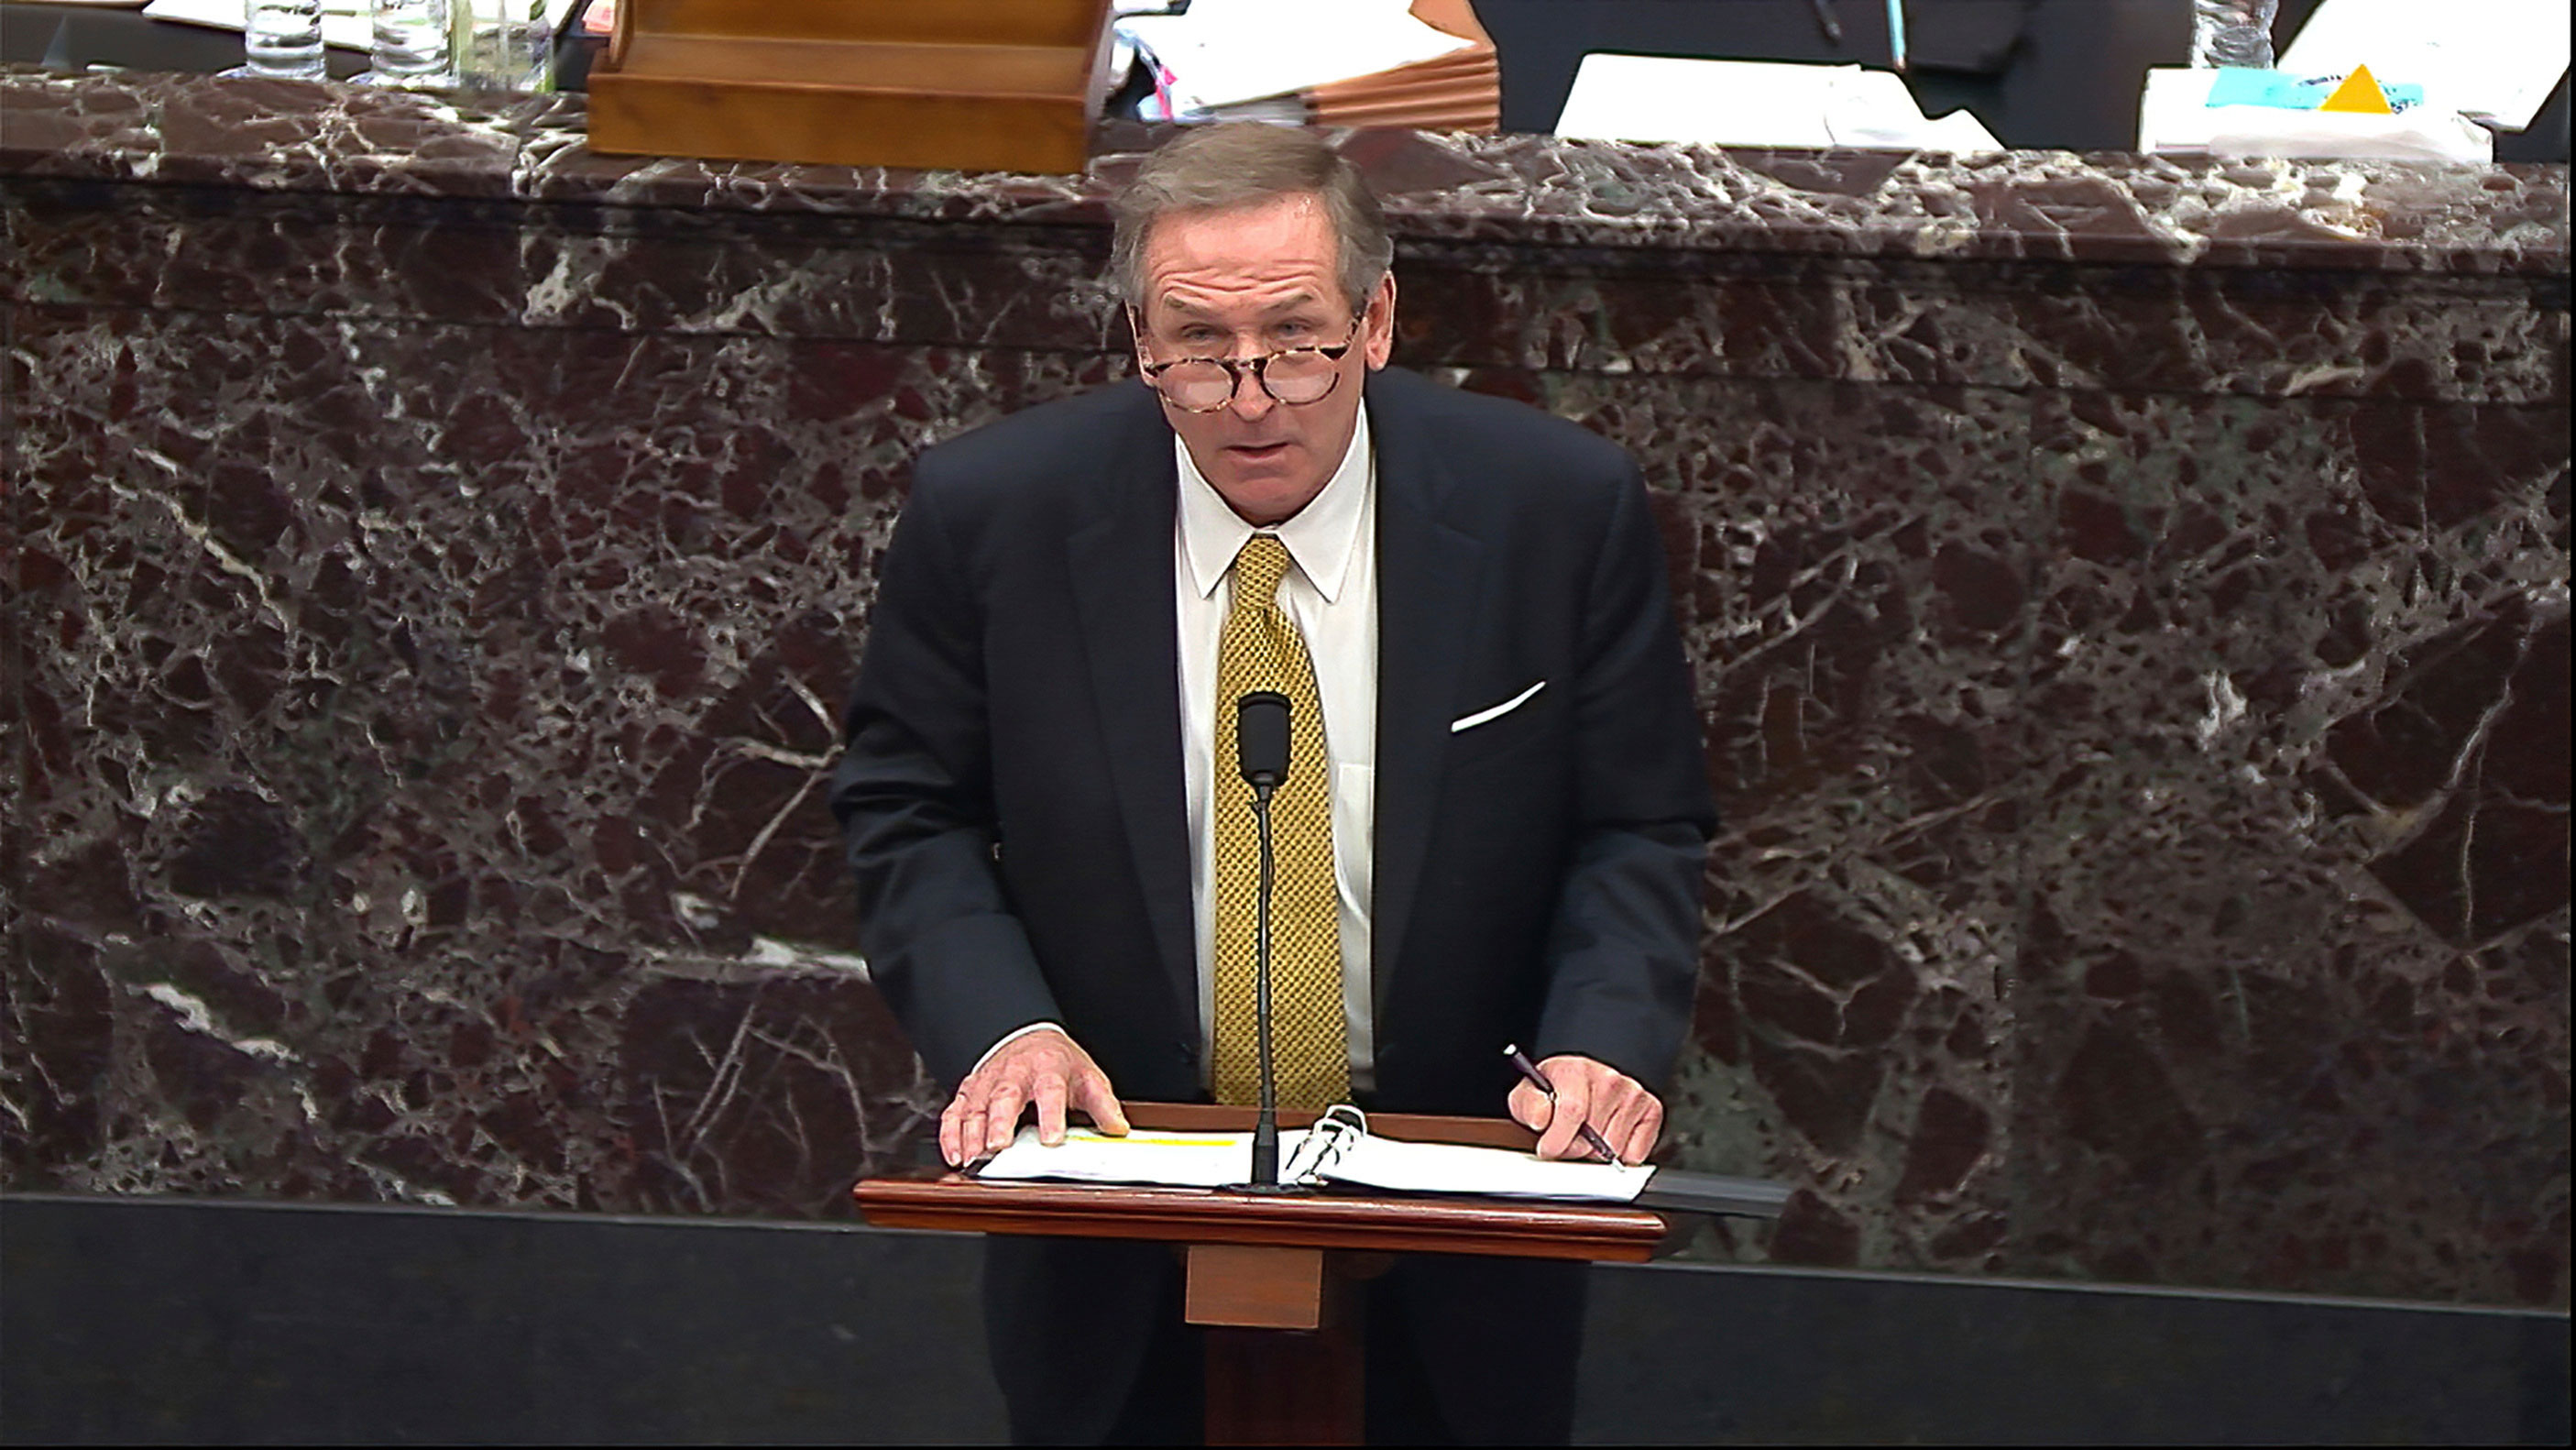 Michael van der Veen, an attorney for former President Donald Trump, speaks at the Capitol during Trump's second impeachment trial on February 12.